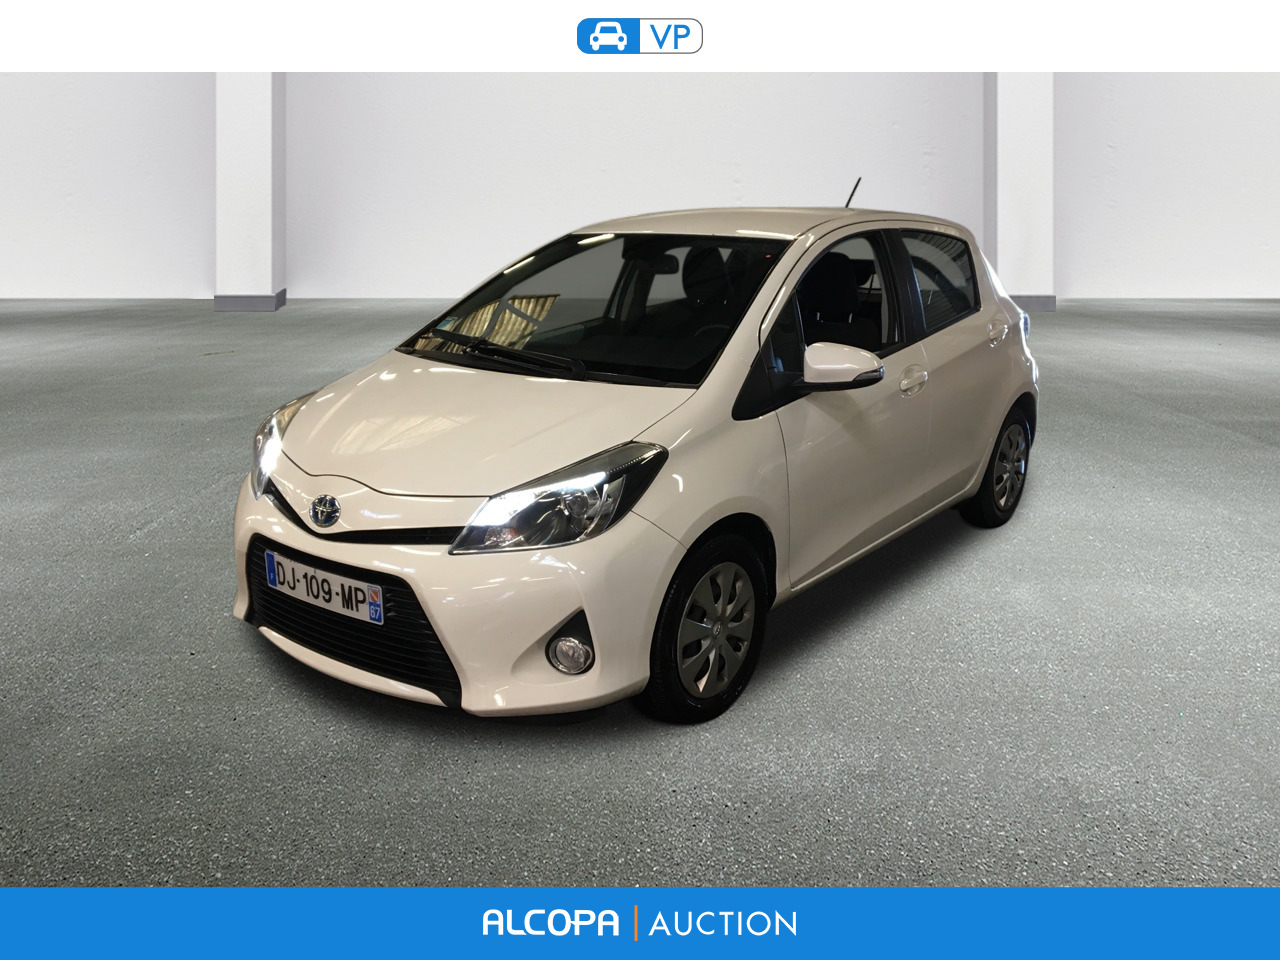 toyota yaris hybride 11 2013 12 2014 yaris 100h dynamic alcopa auction. Black Bedroom Furniture Sets. Home Design Ideas